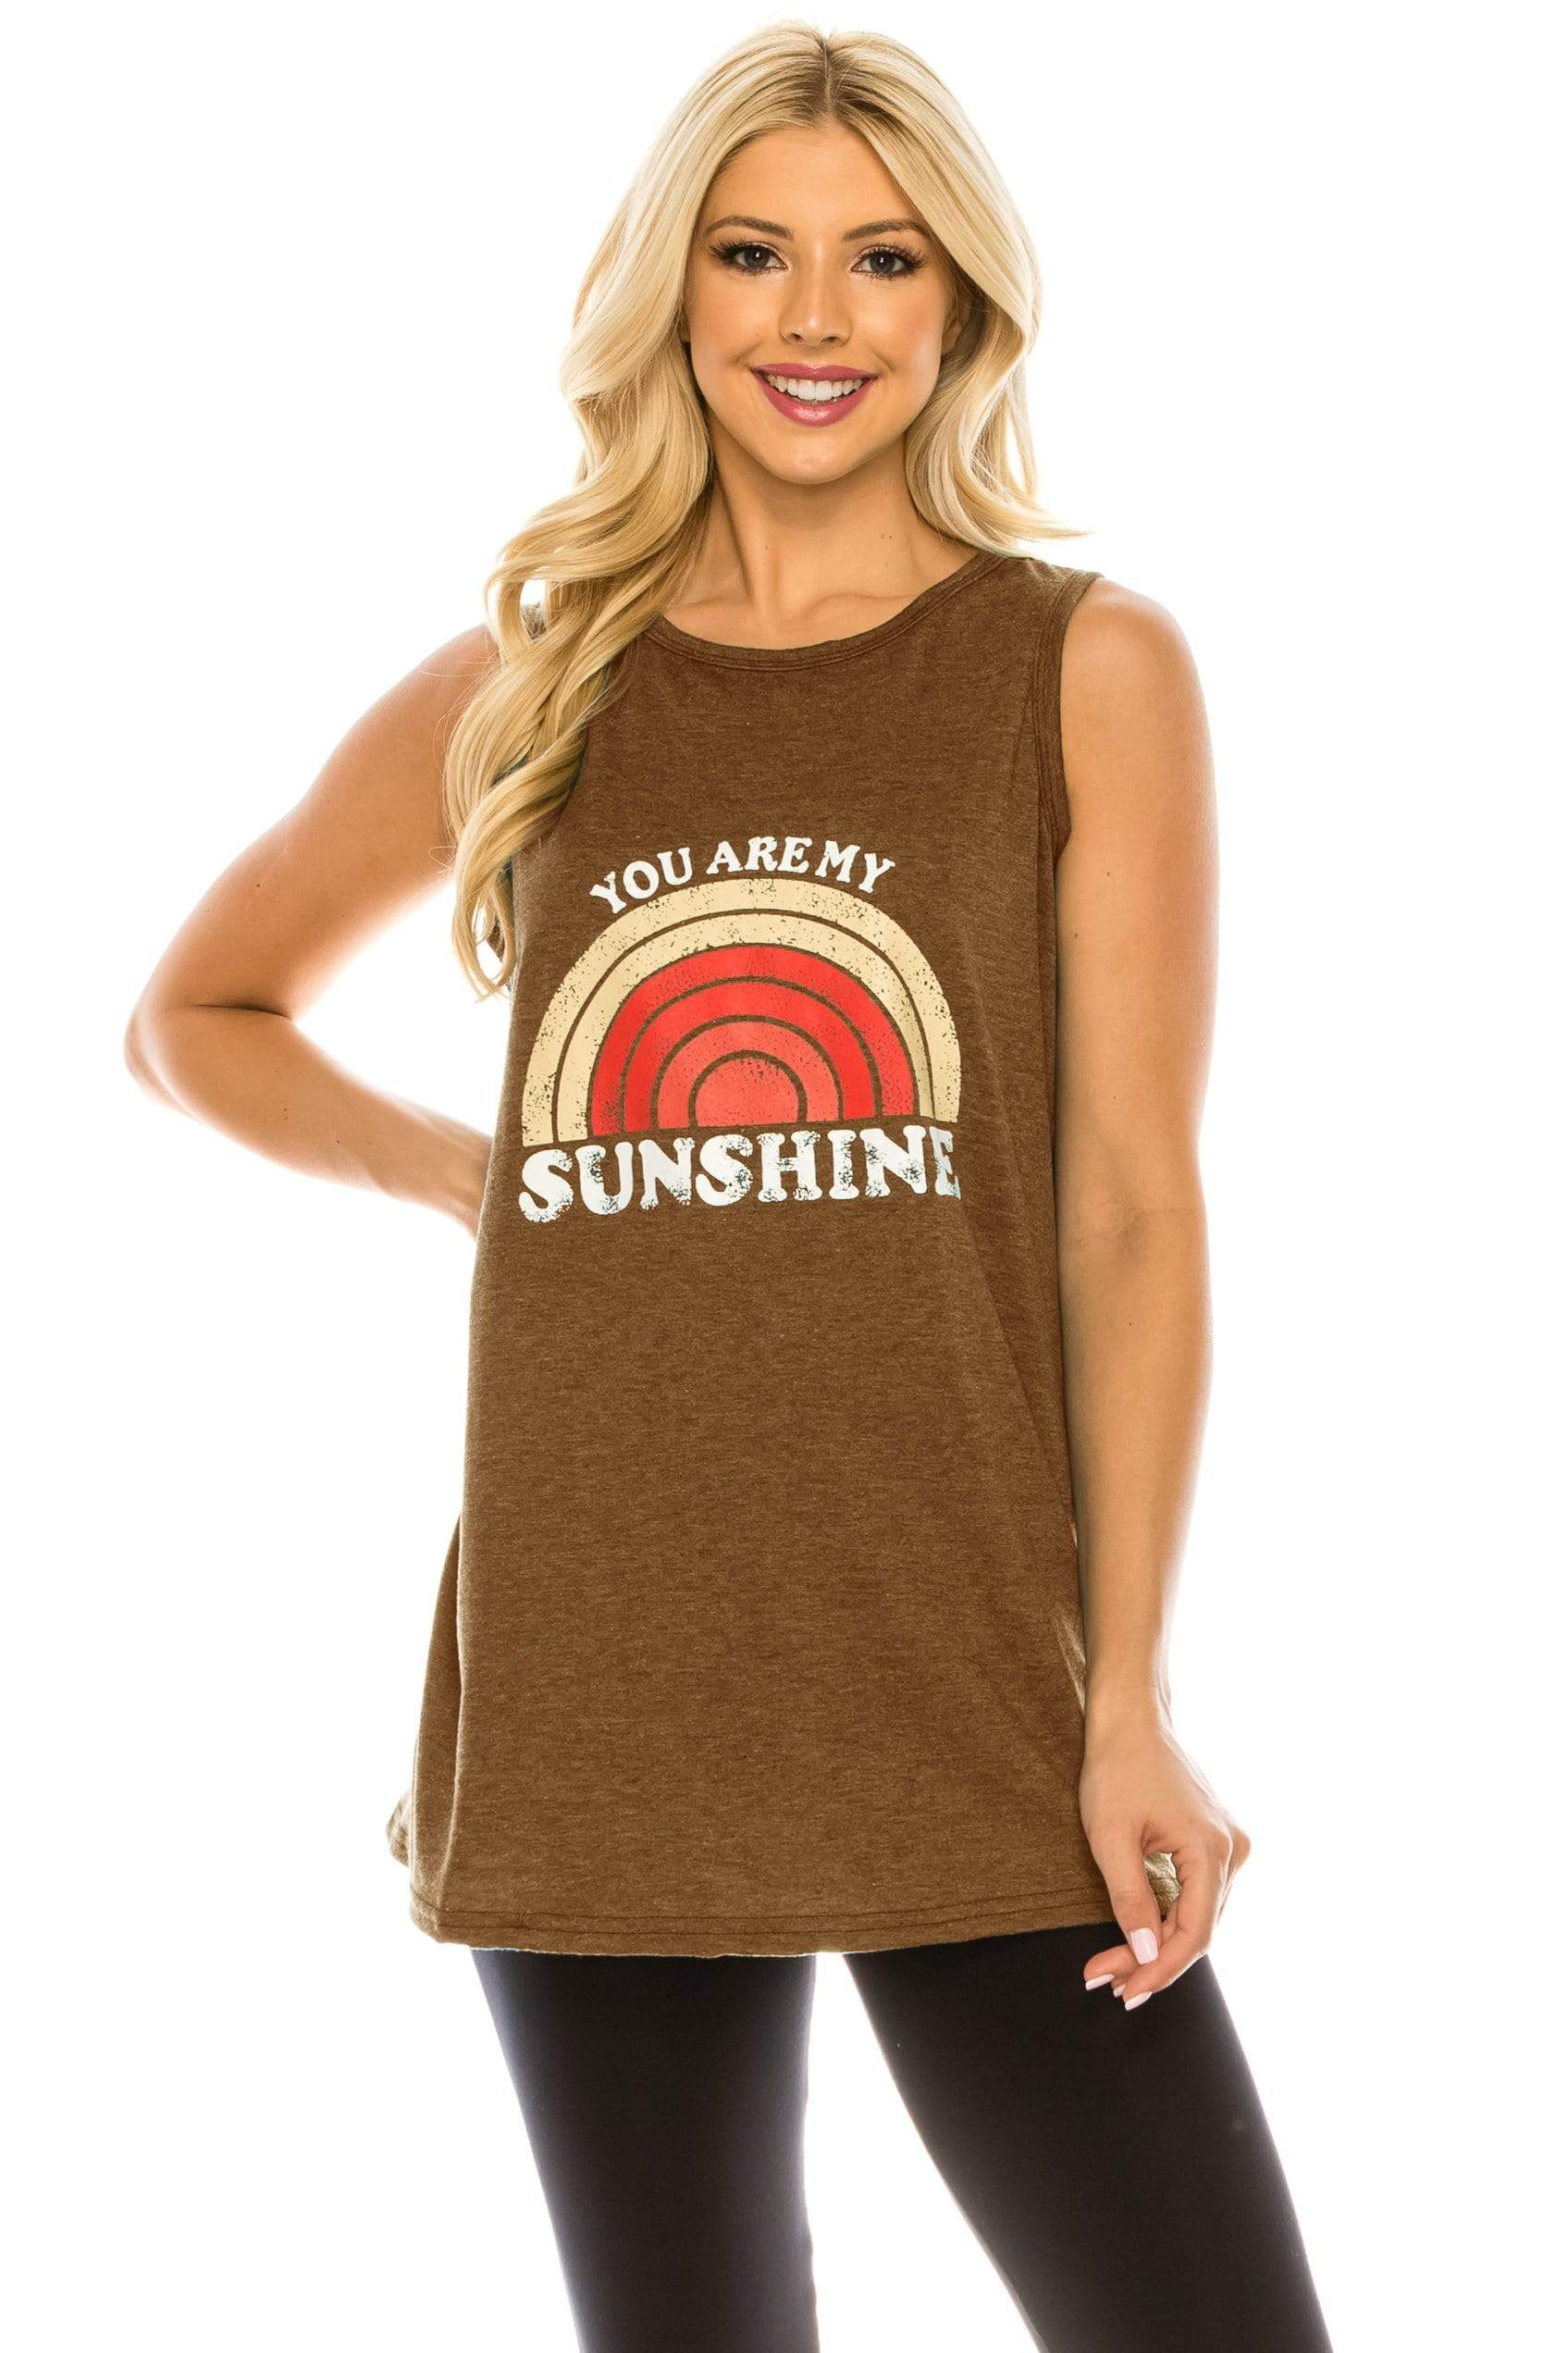 Haute Edition WOMEN'S TOP ORANGE / S Haute Edition Women's Sunshine Loose Fit Tank top. Plus size available